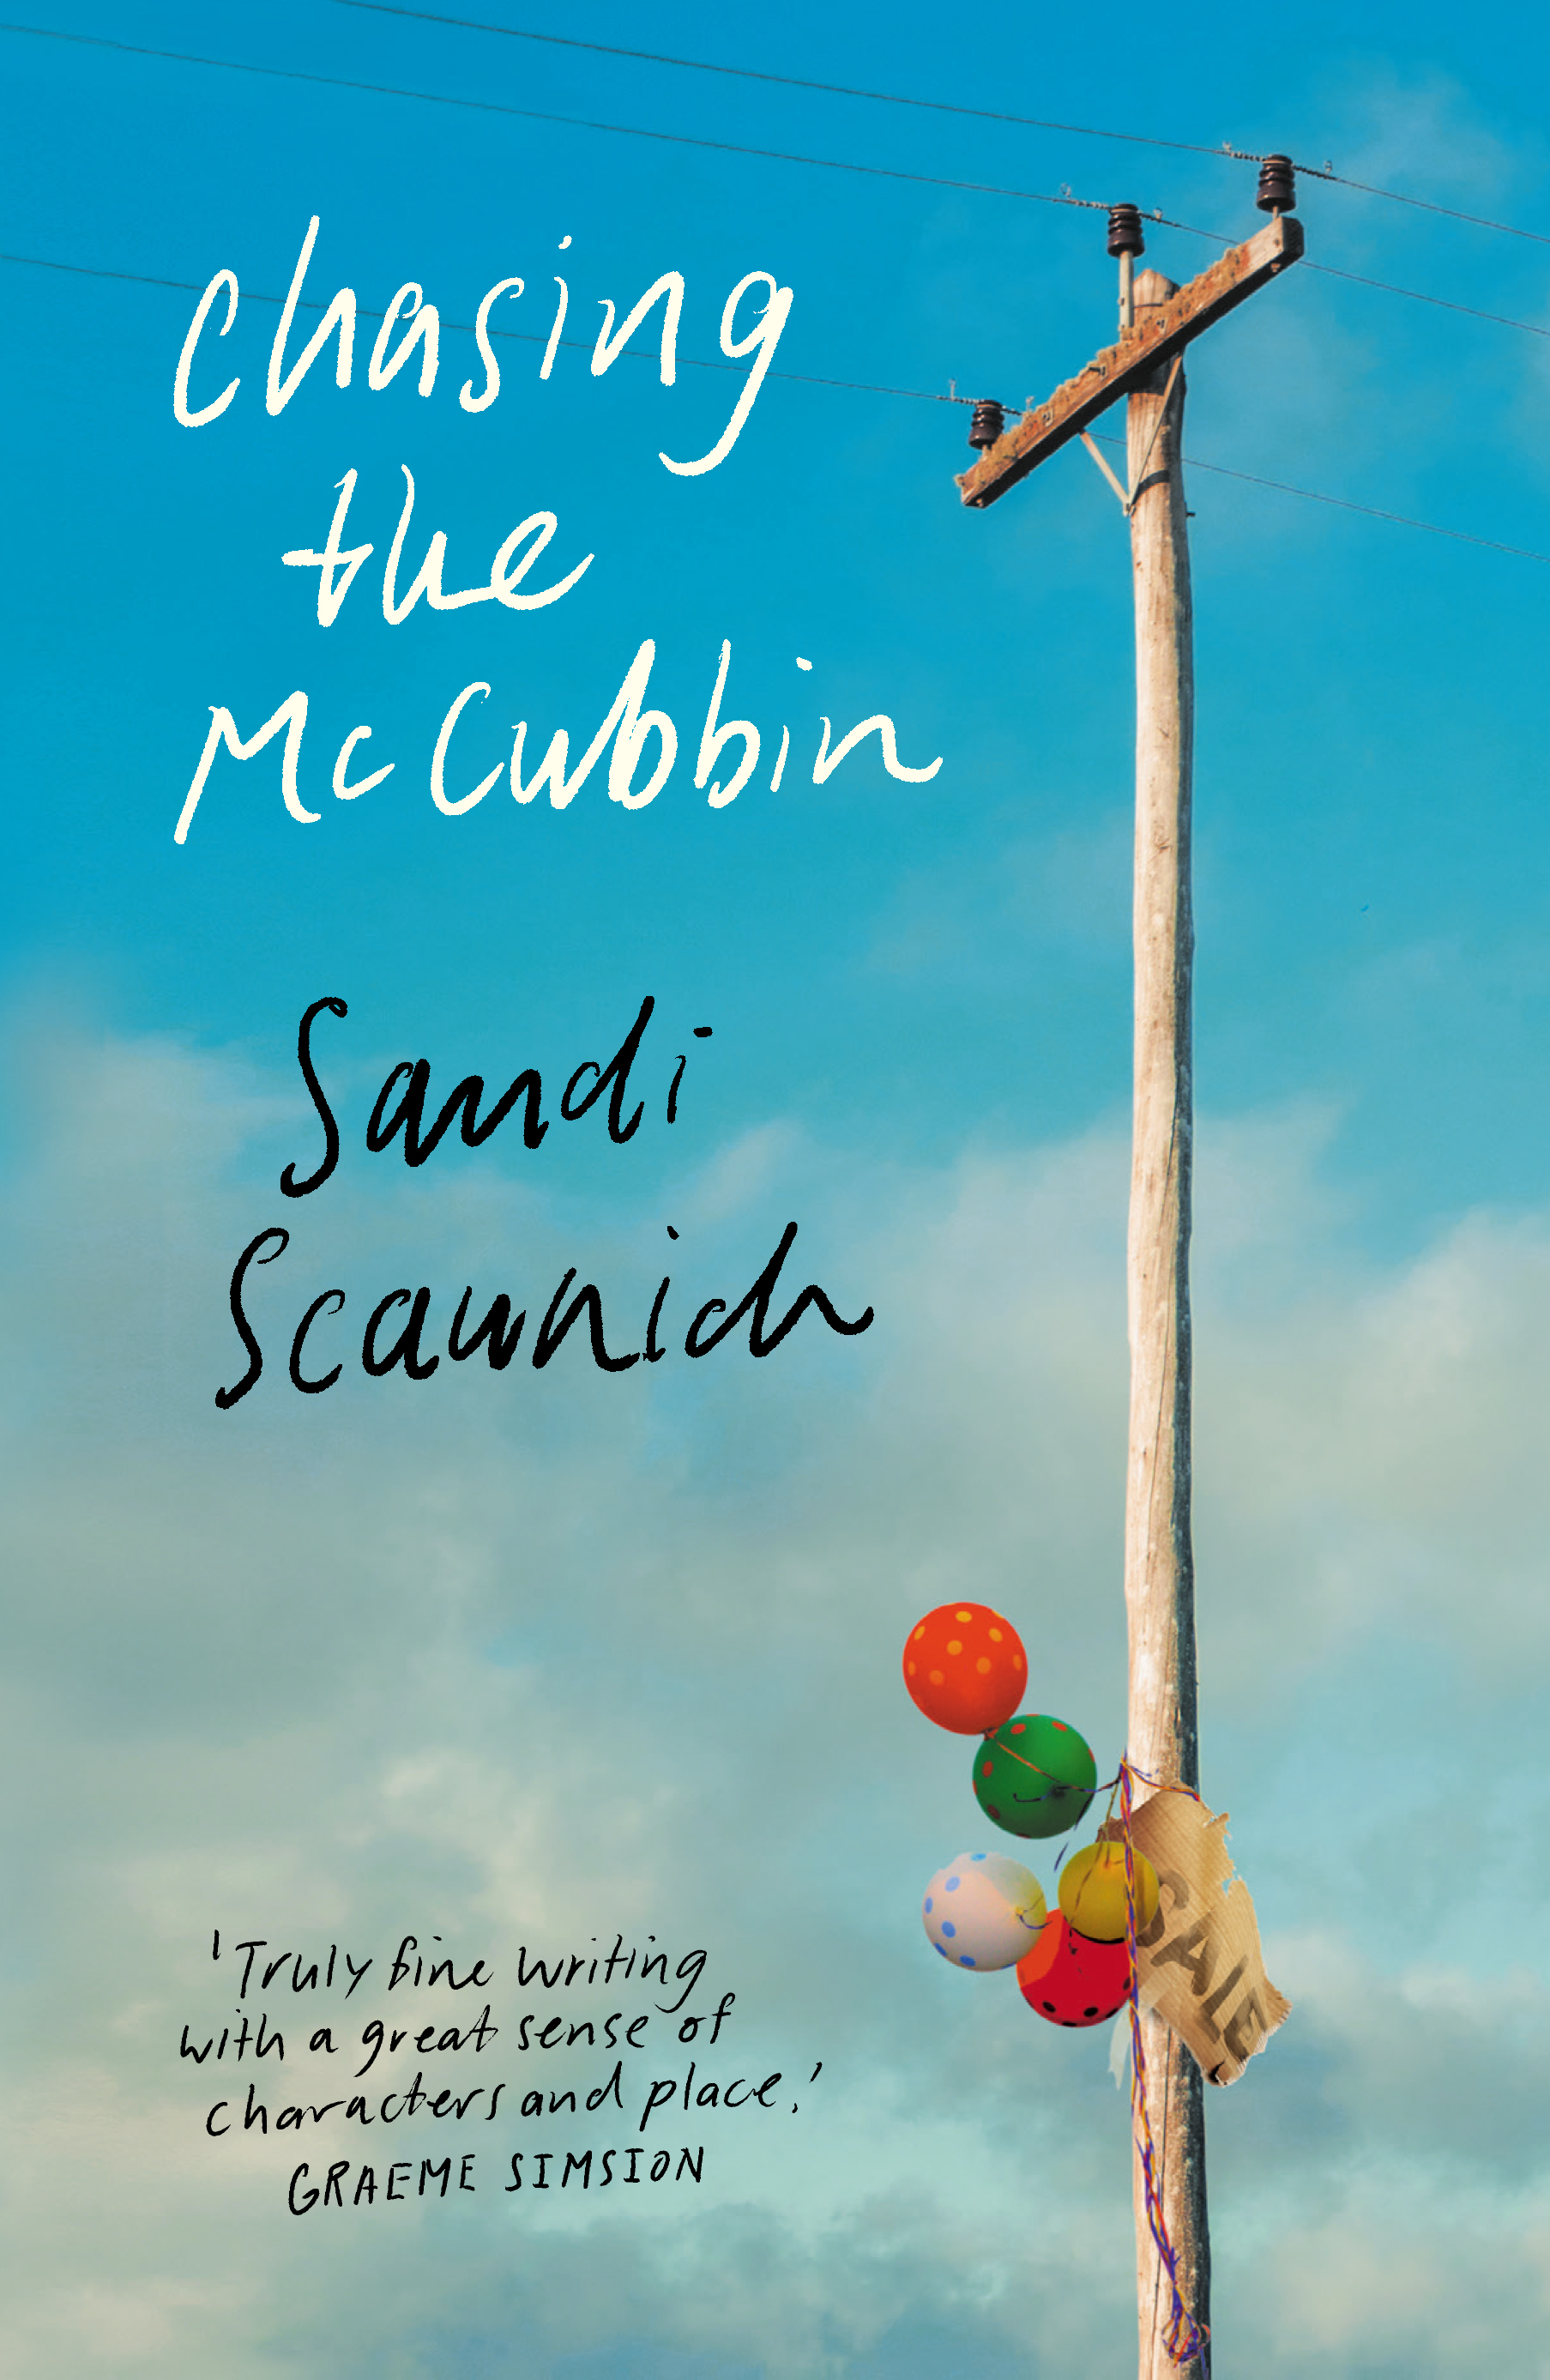 Launch of Chasing the McCubbin by Sandi Scaunich